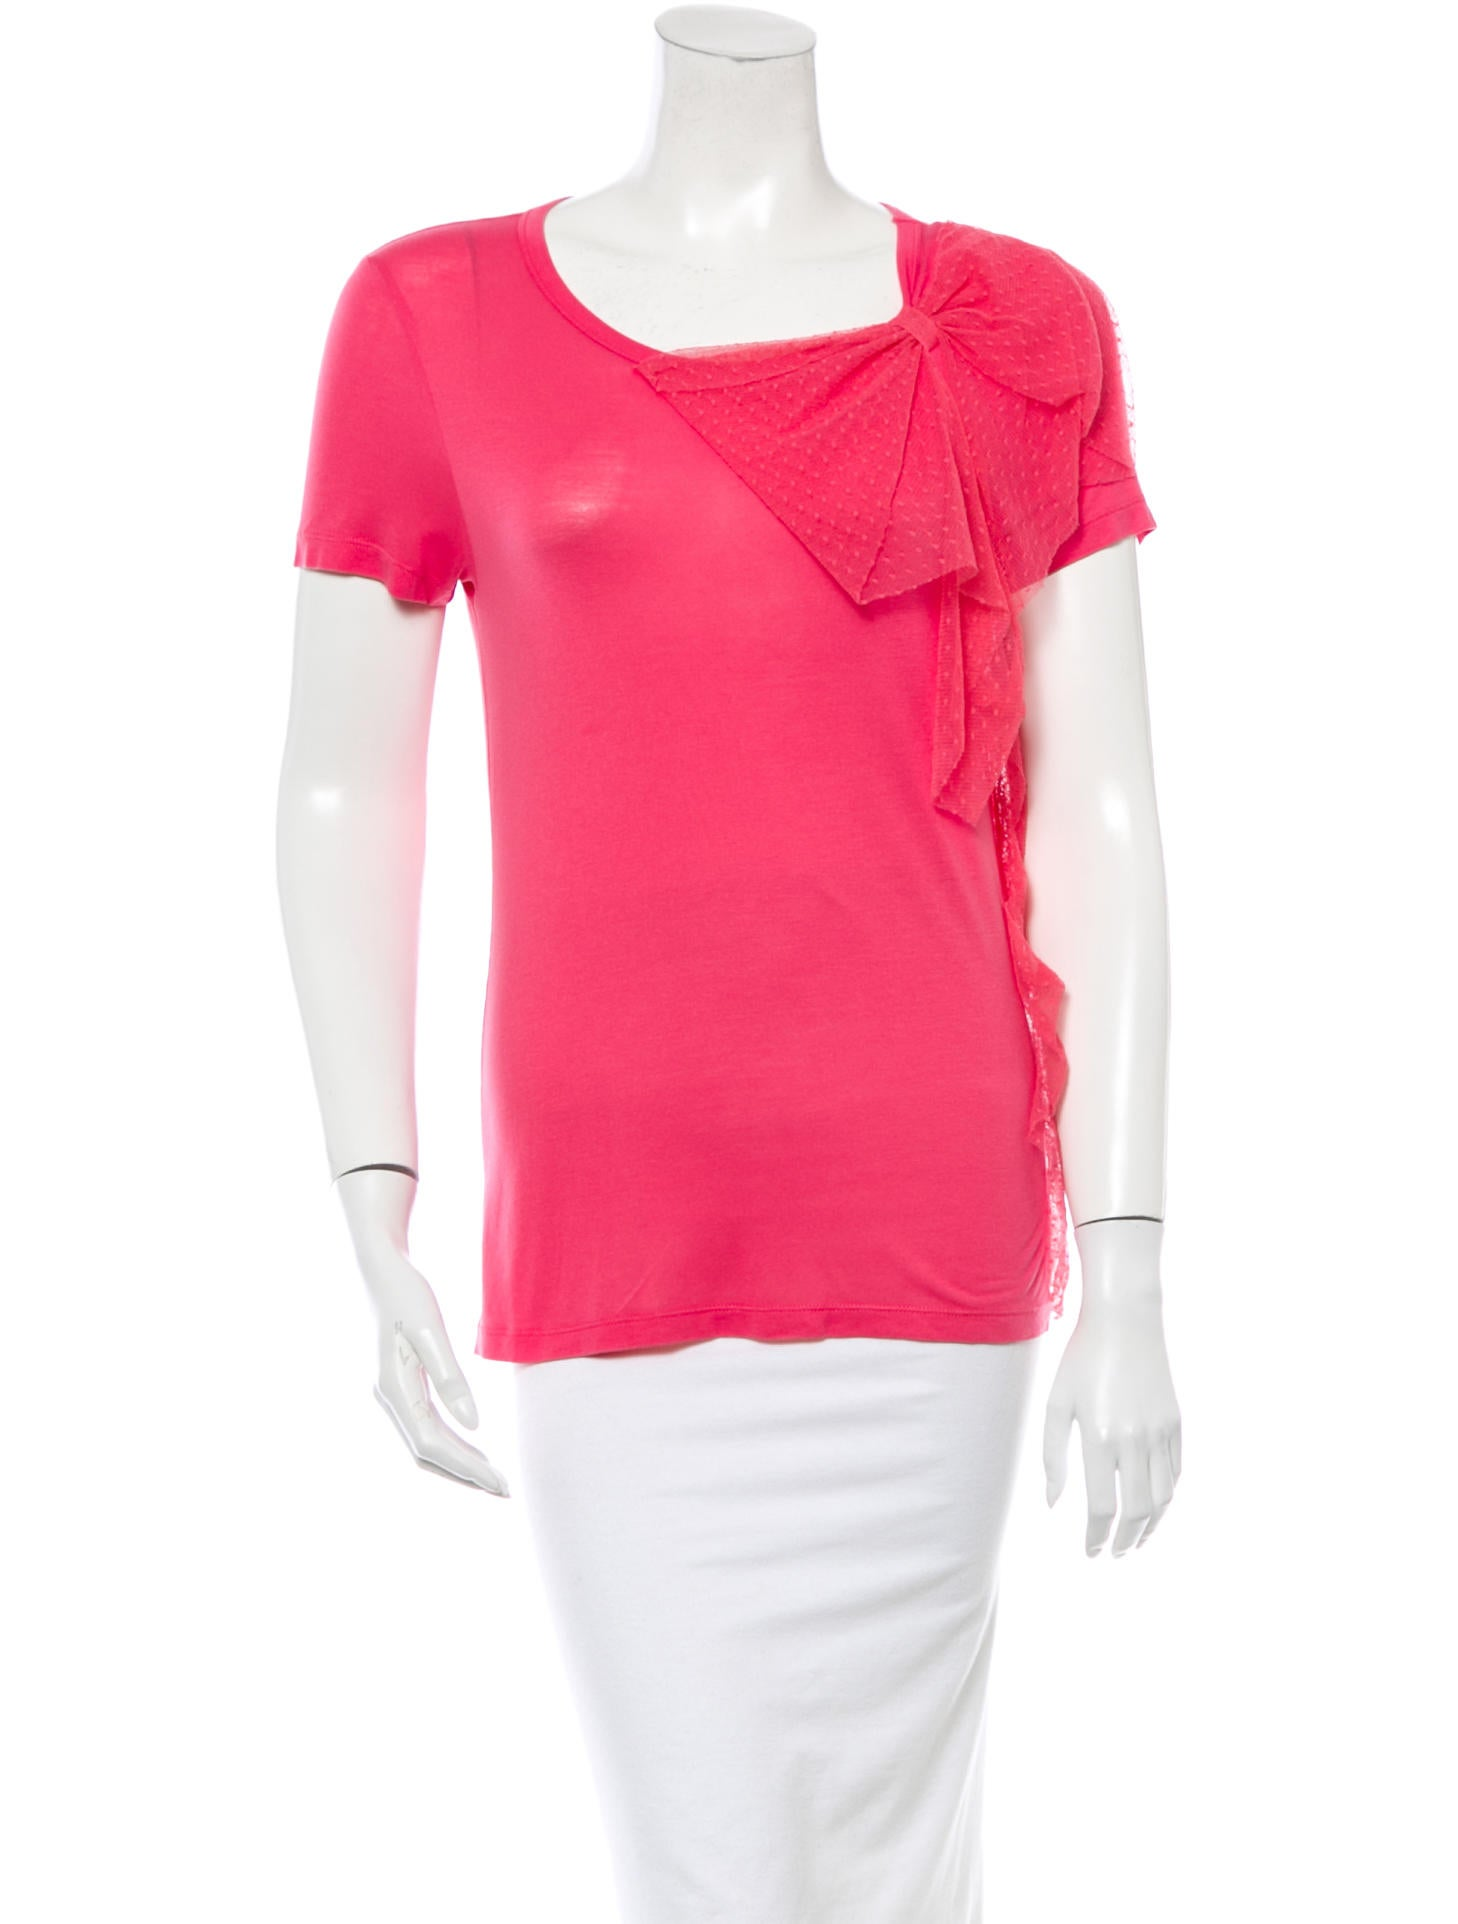 Red valentino t shirt tops wre23244 the realreal for Red valentino t shirt